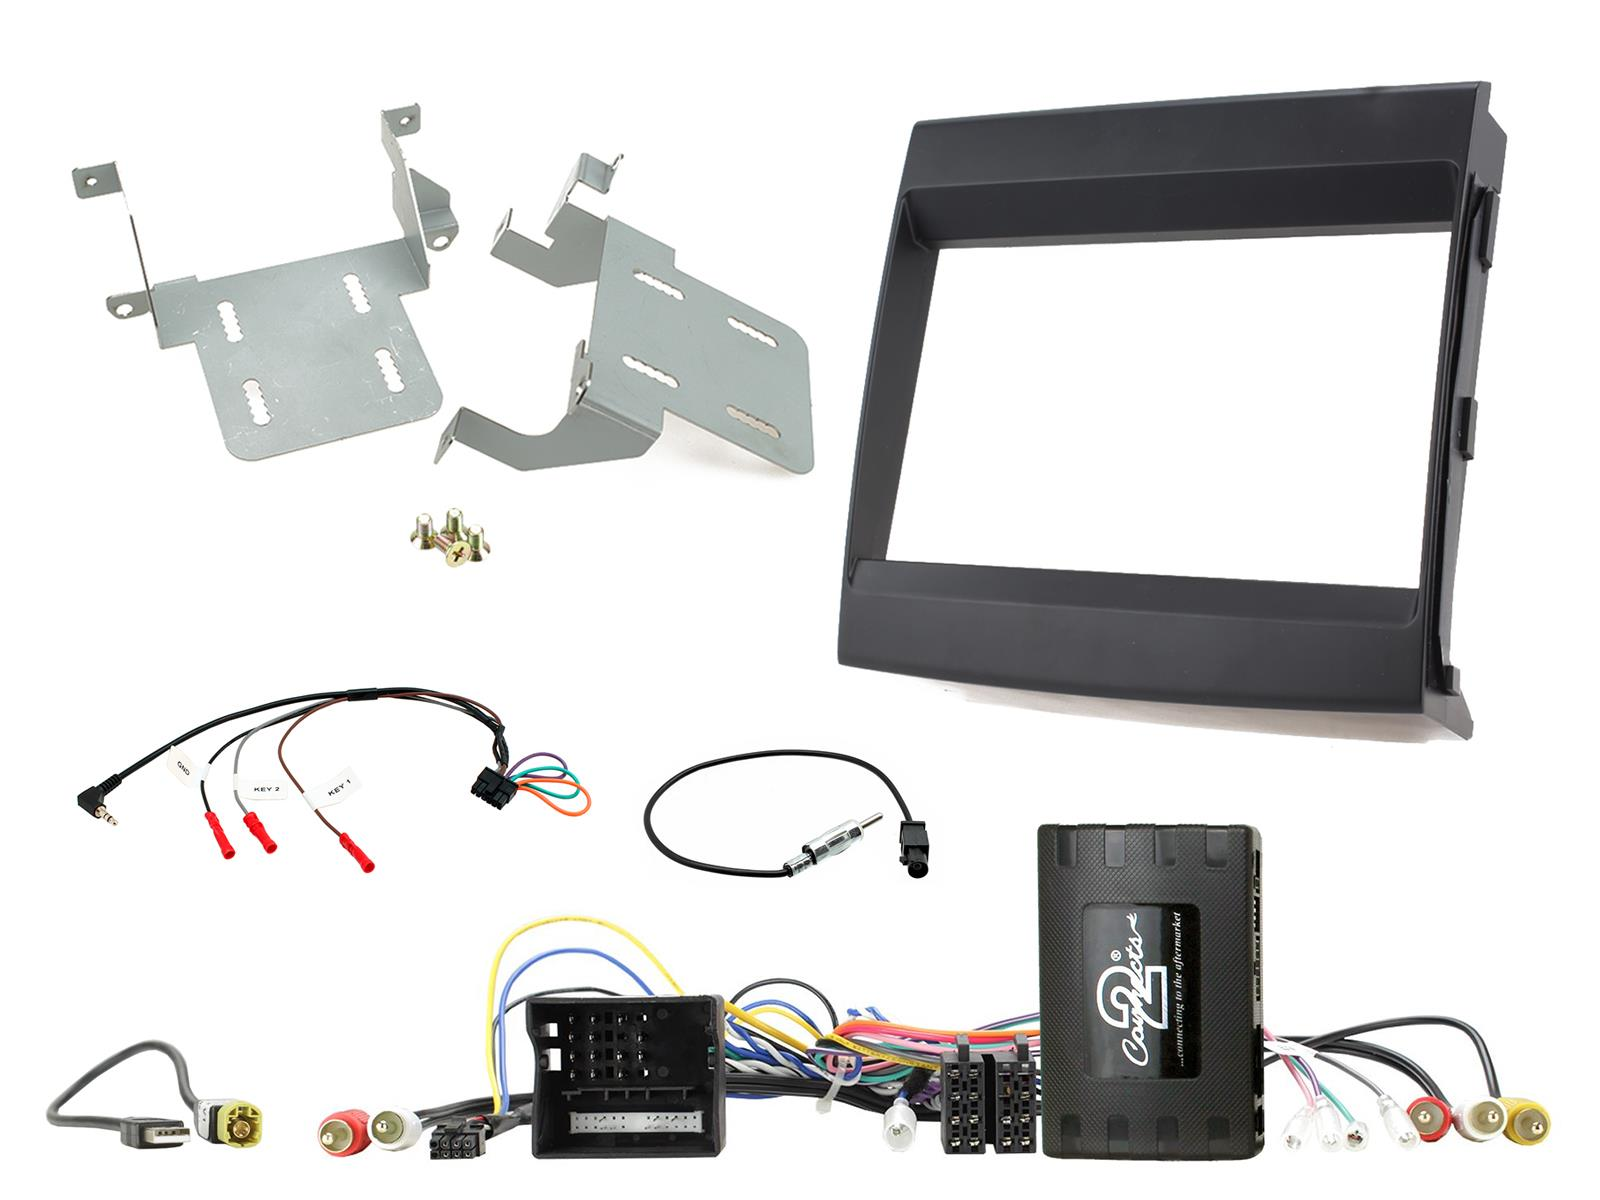 2DIN KIT Porsche Cayenne 2011-2016 + pdc image/cam retention